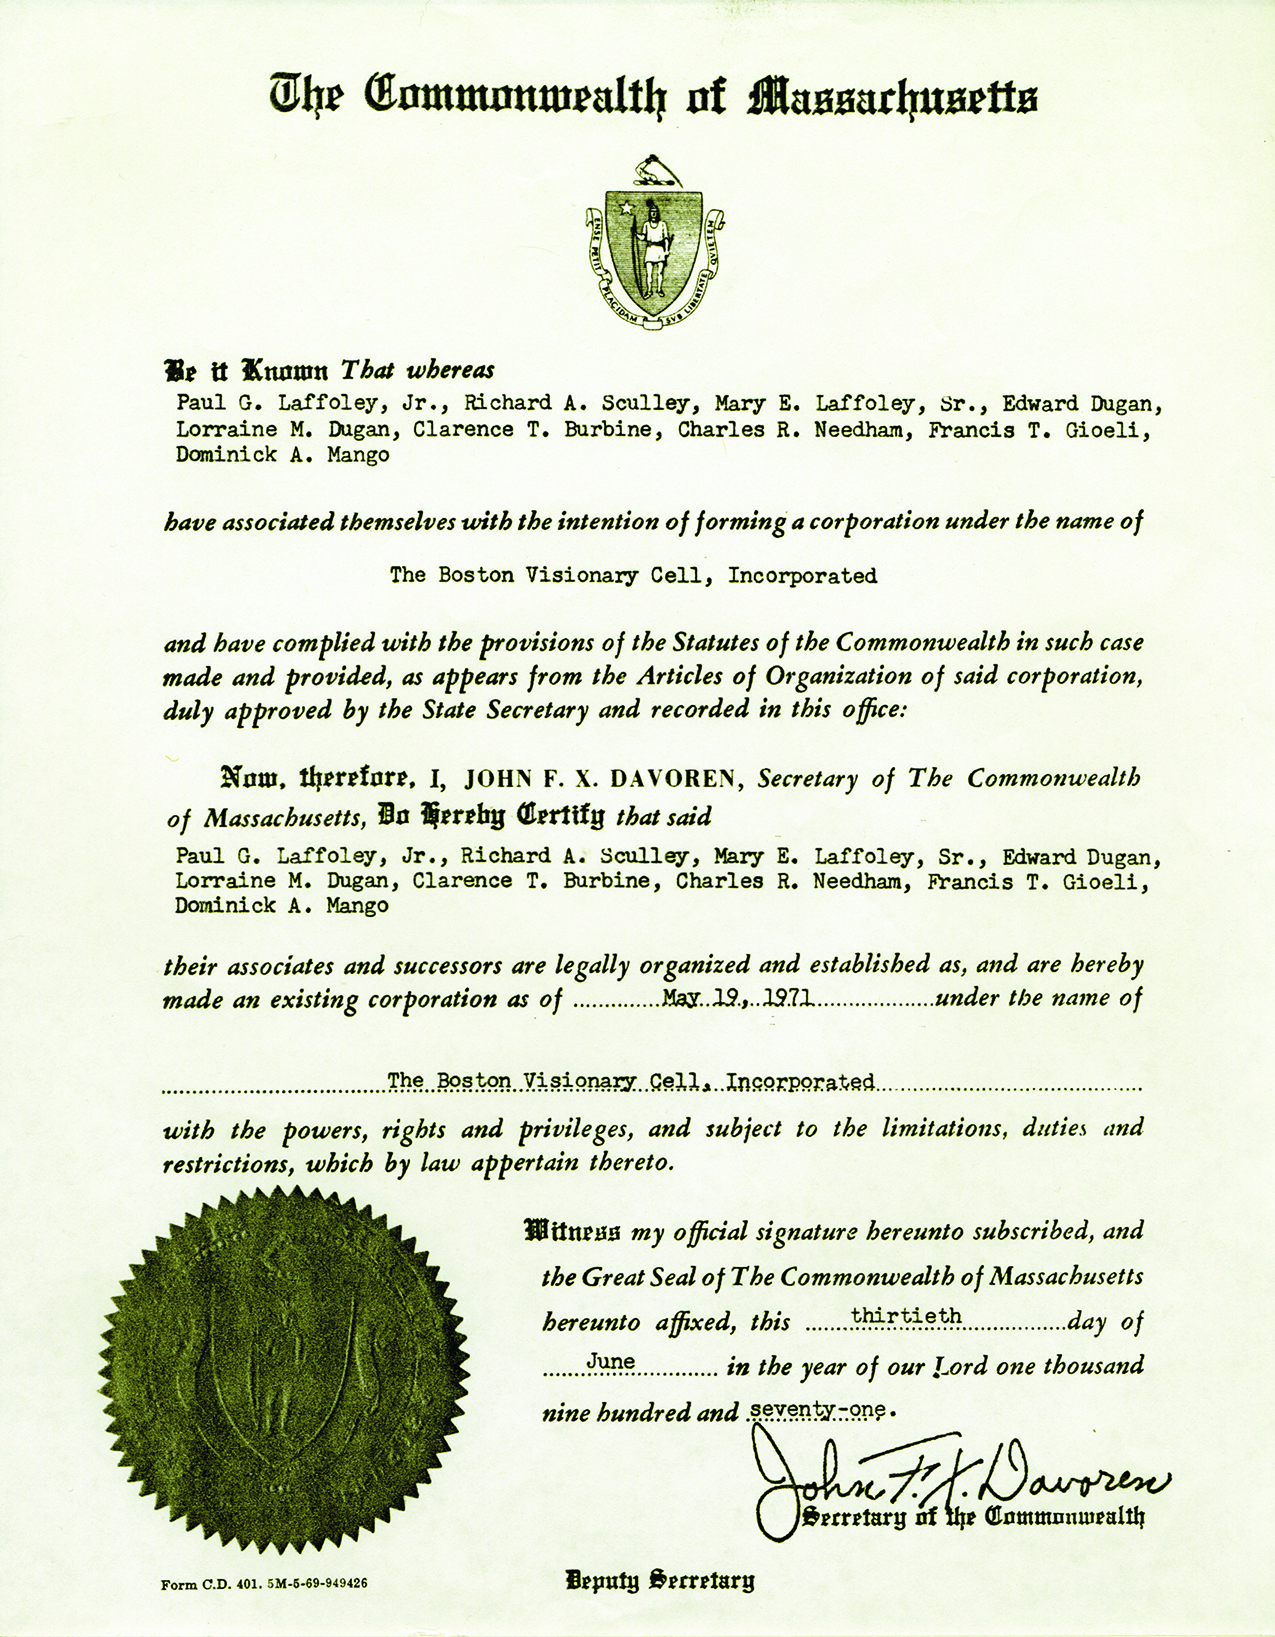 Boston Visionary Cell Articles of Incorporation, 1971